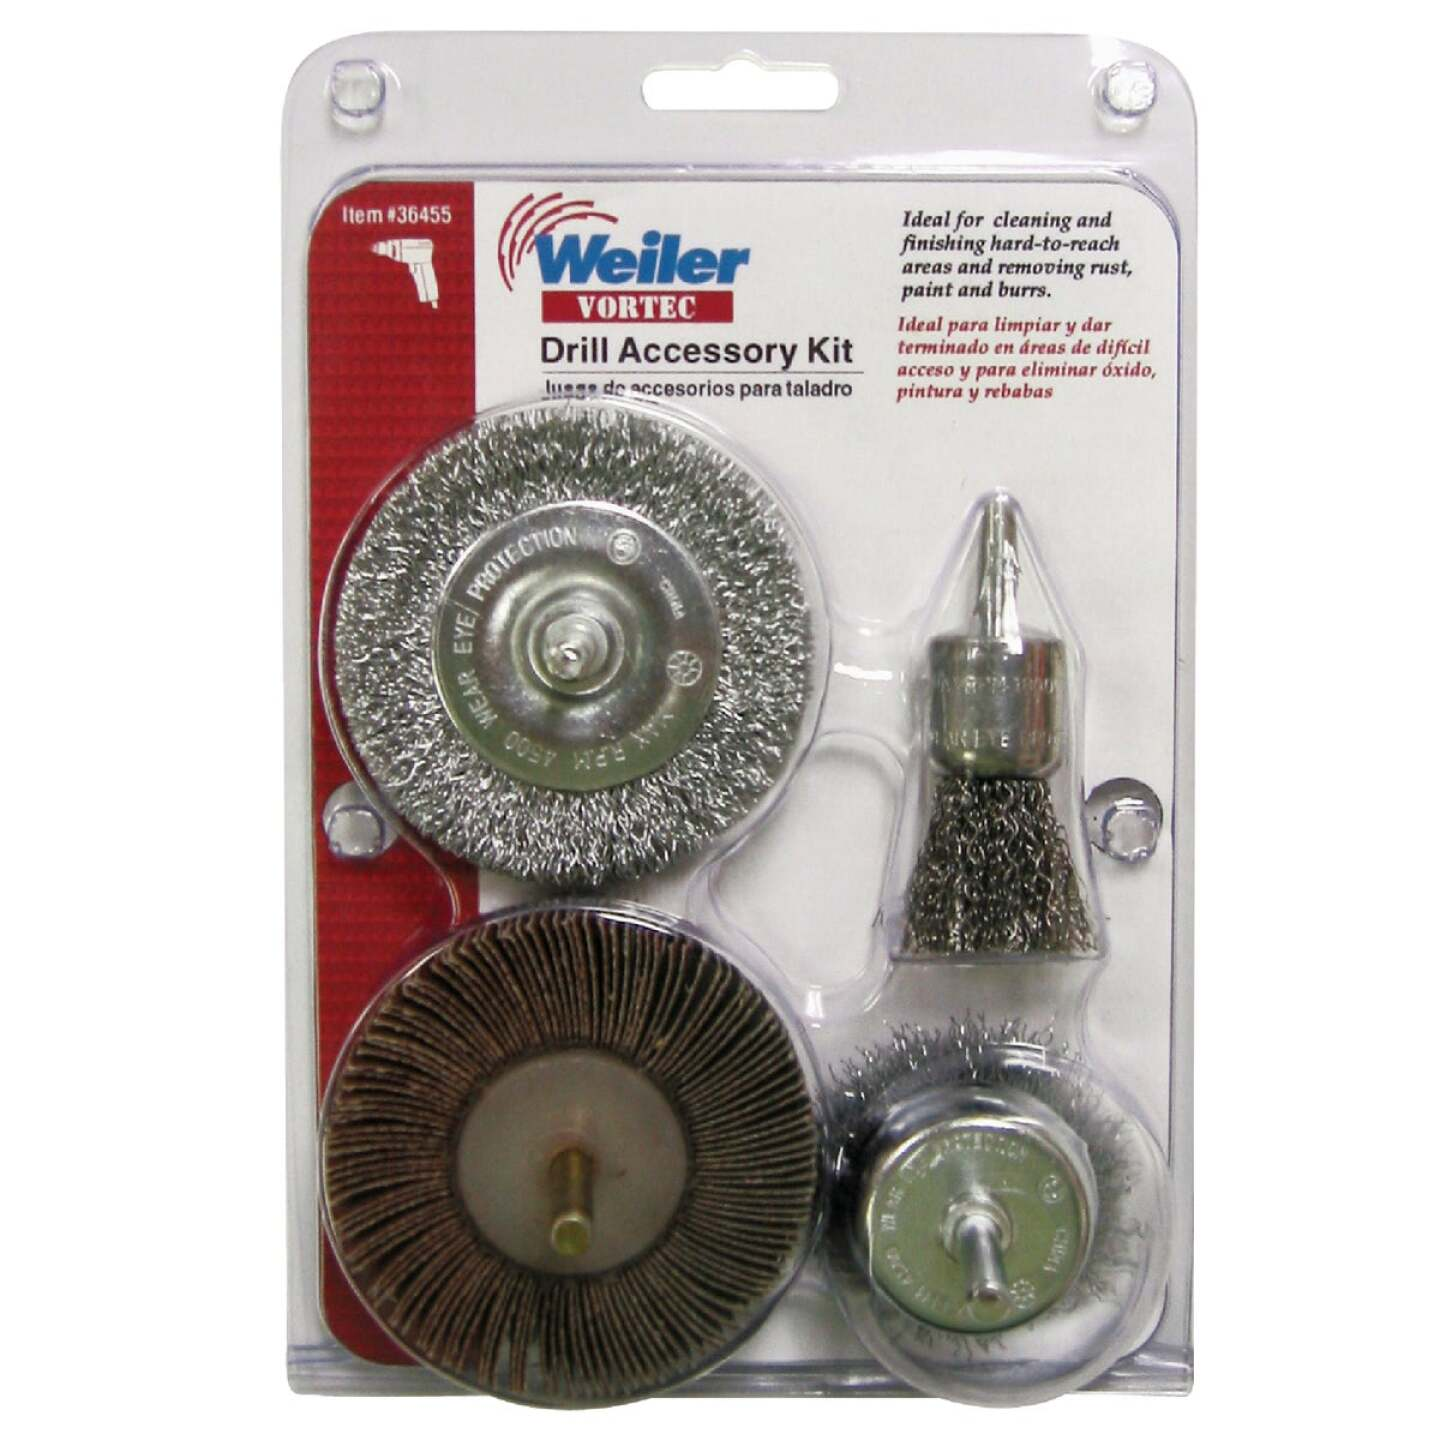 Weiler Vortec 4 pcs Abrasive Wheel & Brush Set Image 2